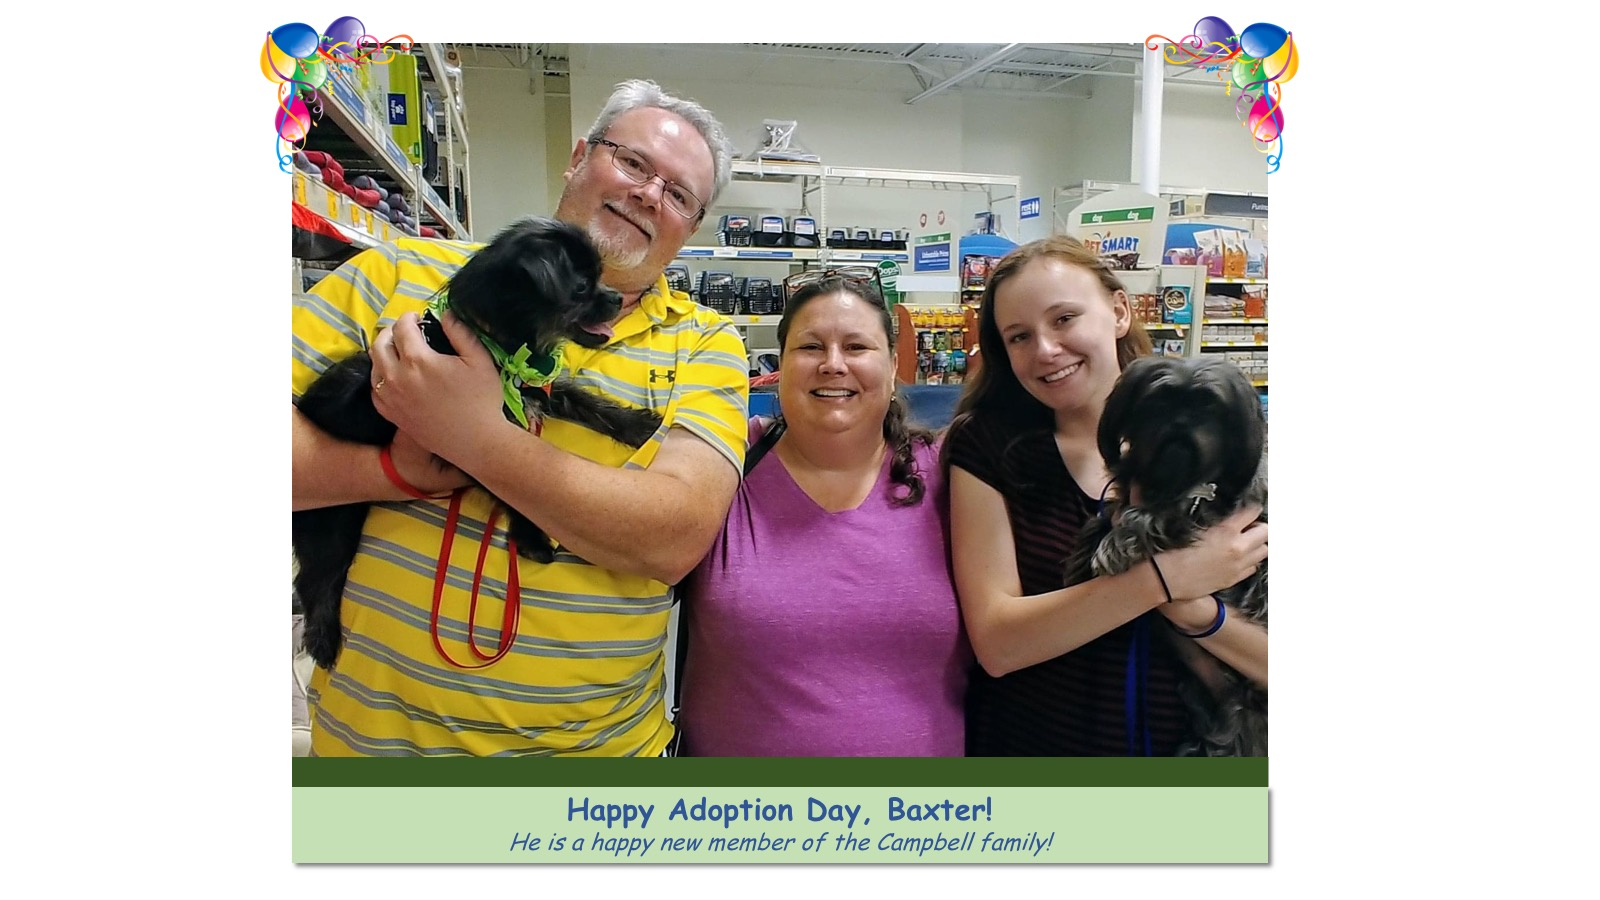 Baxter_Adoption_Photo_2018.jpg